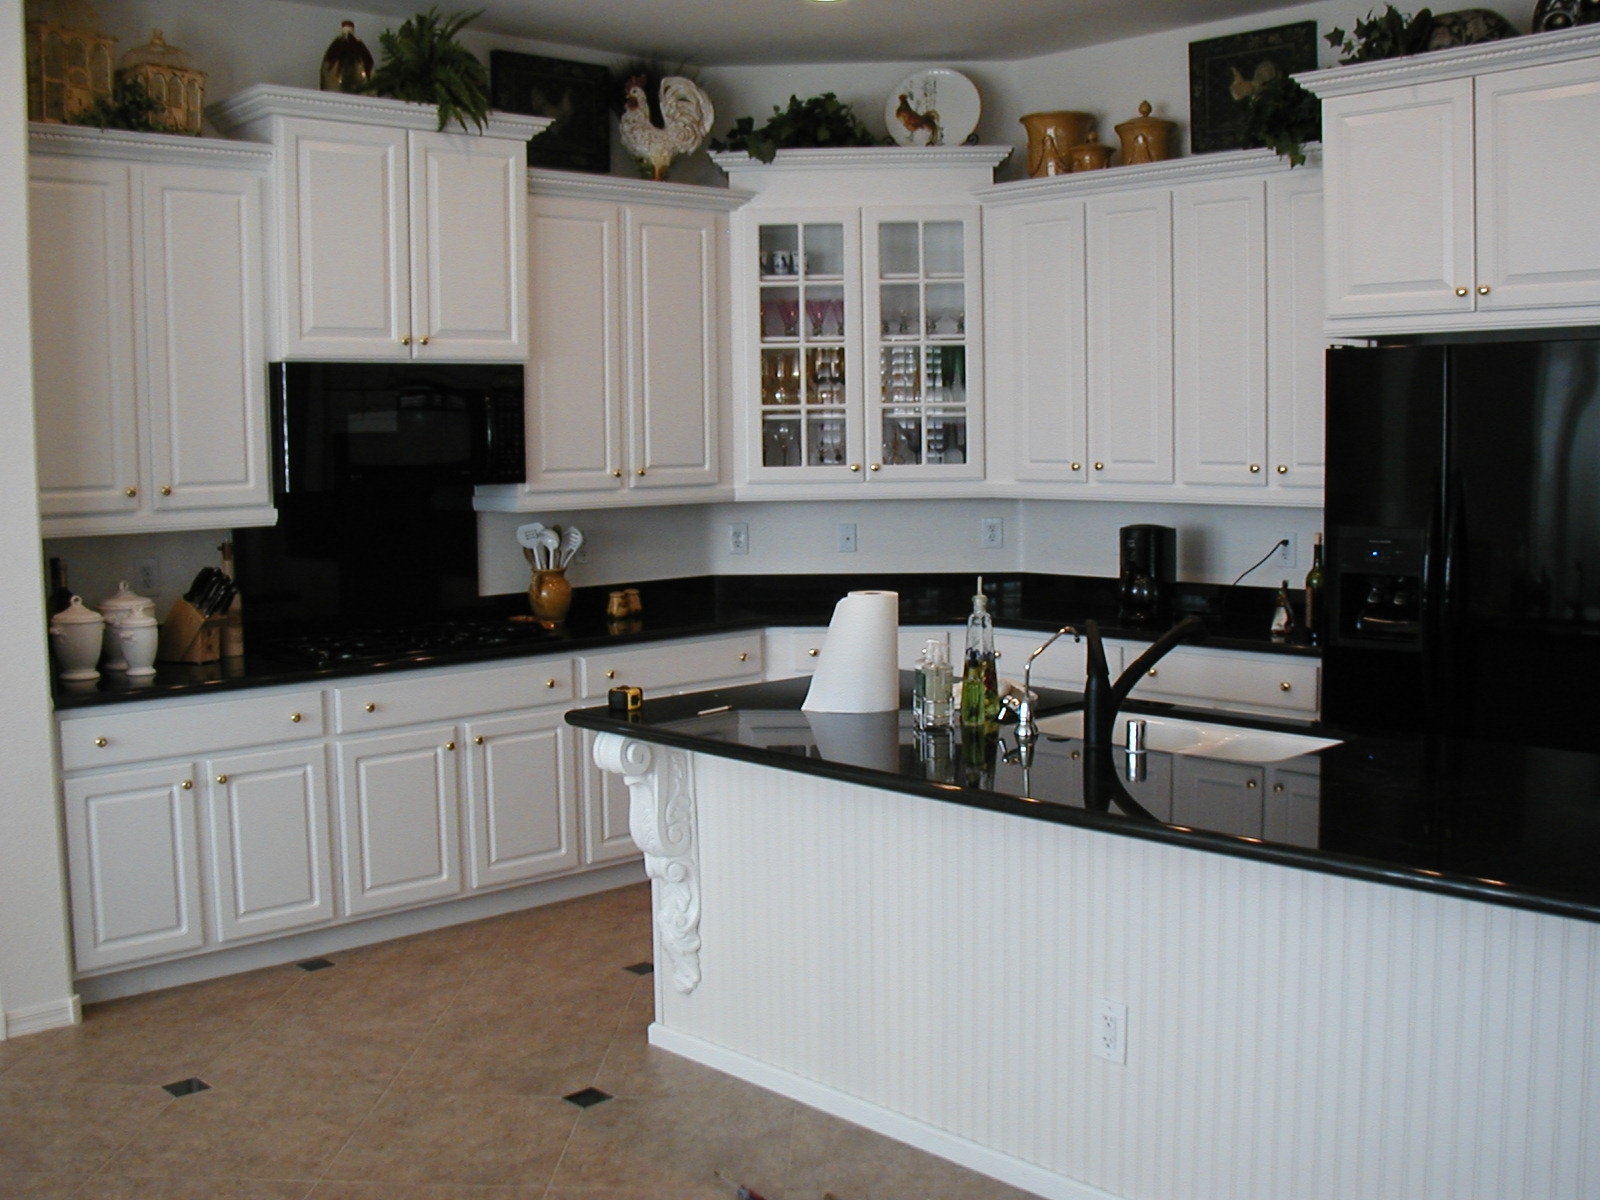 Pictures Of Black Kitchen Cabinets